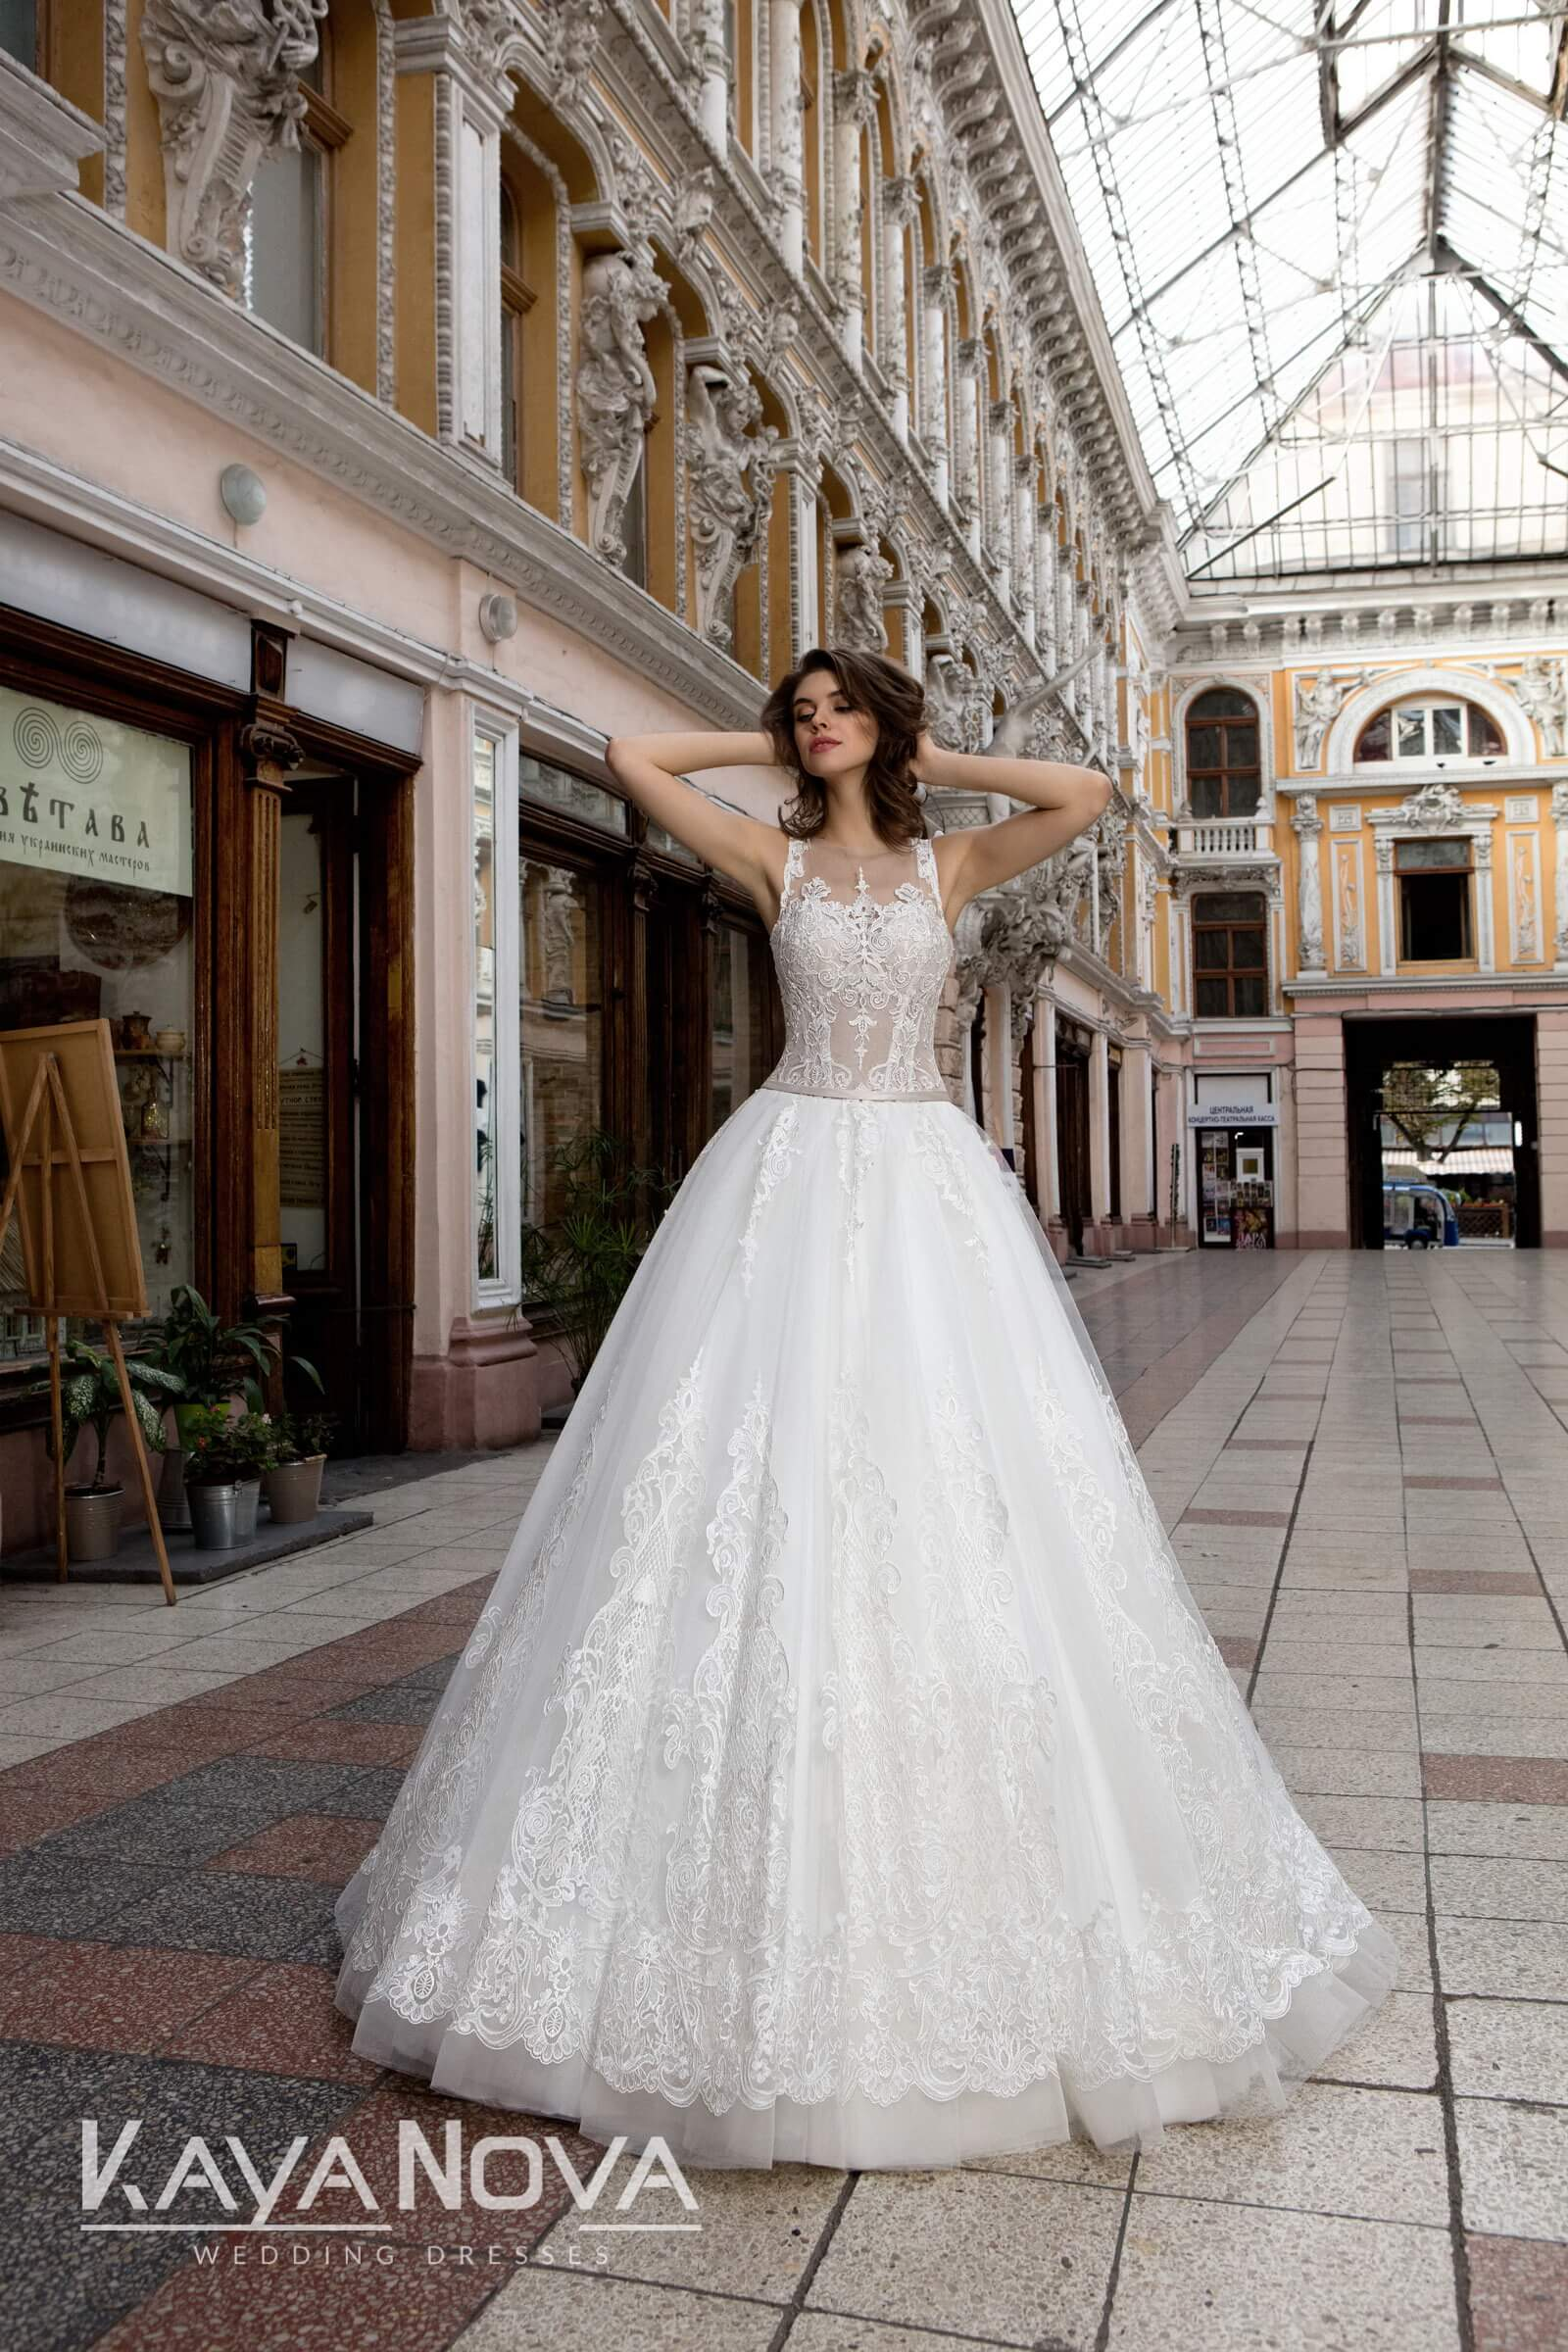 https://kayawedding.com/images/stories/virtuemart/product/Luisa 18.jpg